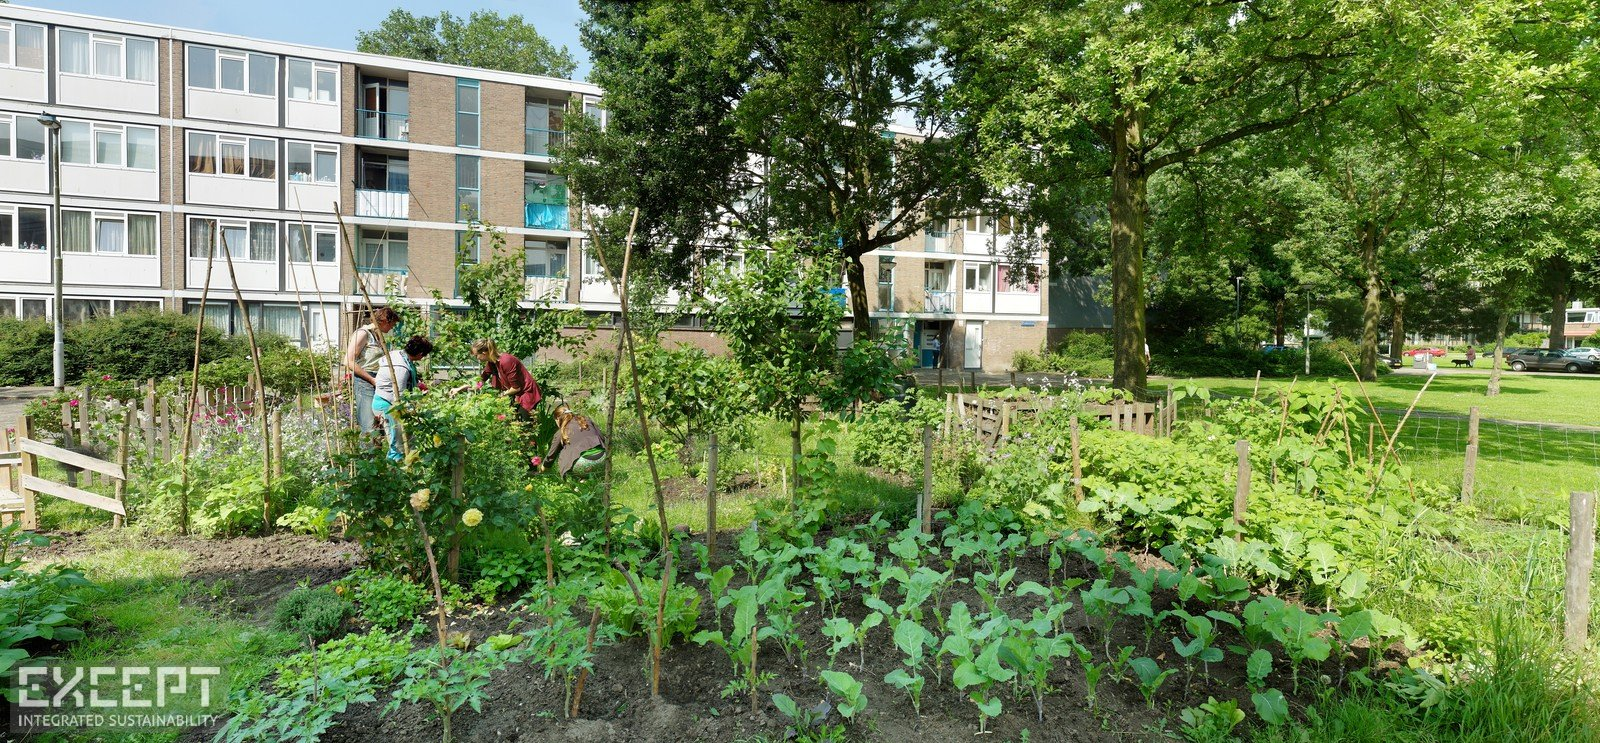 Urban gardens in Schiebroek-Zuid - Local residents working together in the Schiebroek-Zuid urban gardens.